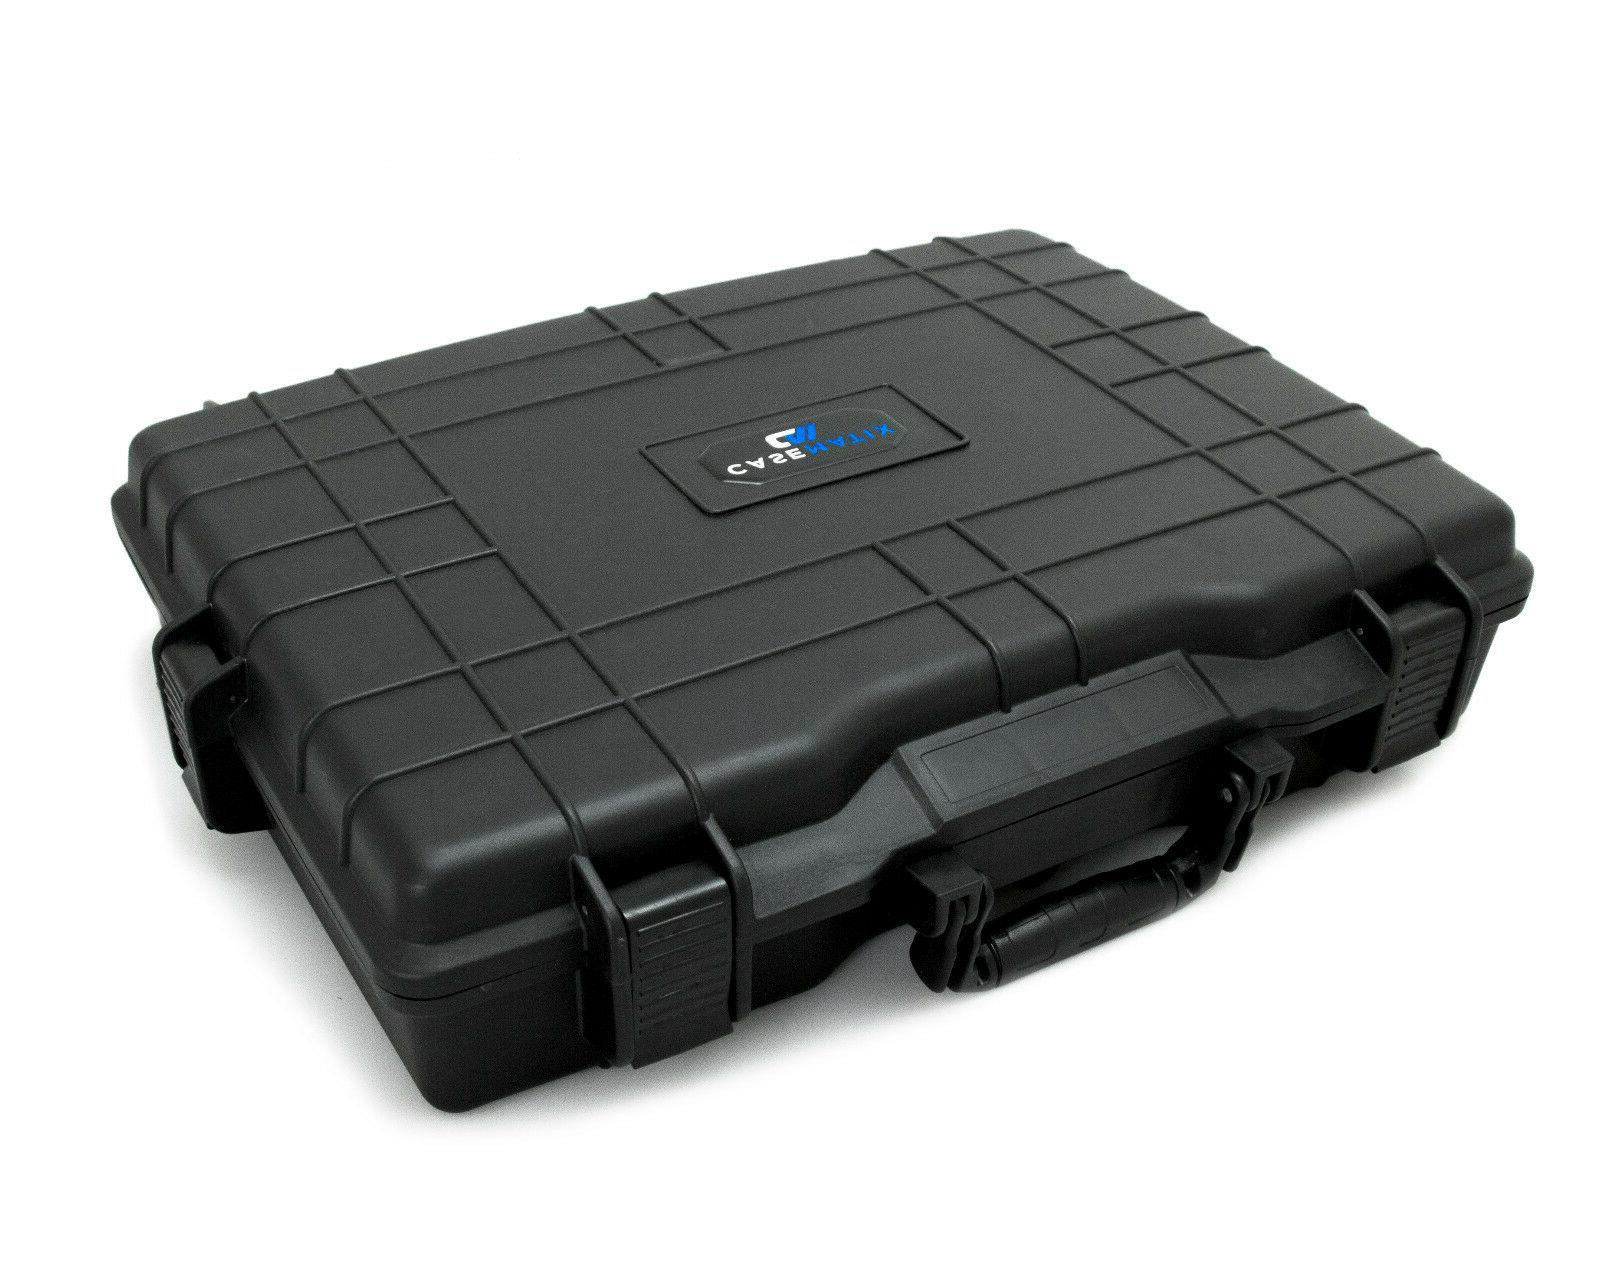 Waterproof Case Fits AOC LCD Up to 17-inch